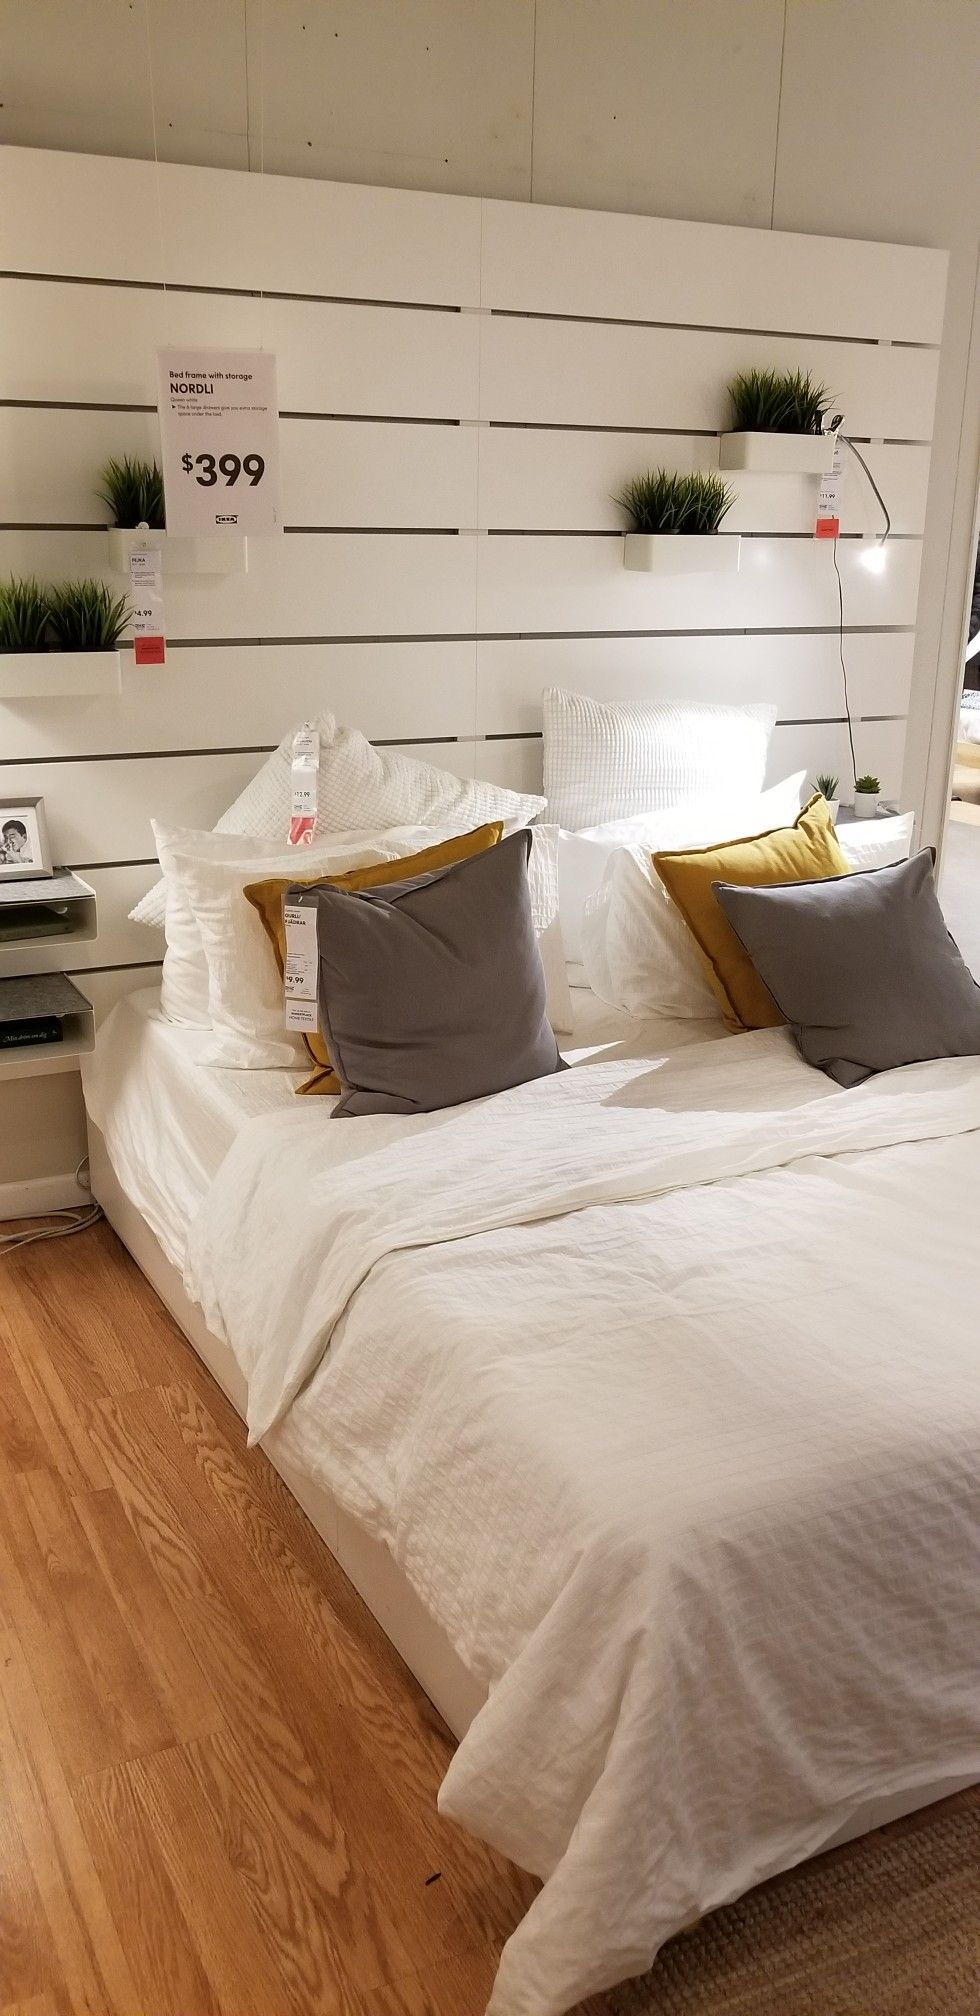 Ikea Headboard Stacked On Top On Each Other 800 Per Headboard With Storage Under T In 2020 Interior Design Bedroom Small Bedroom Closet Design Bedding Master Bedroom